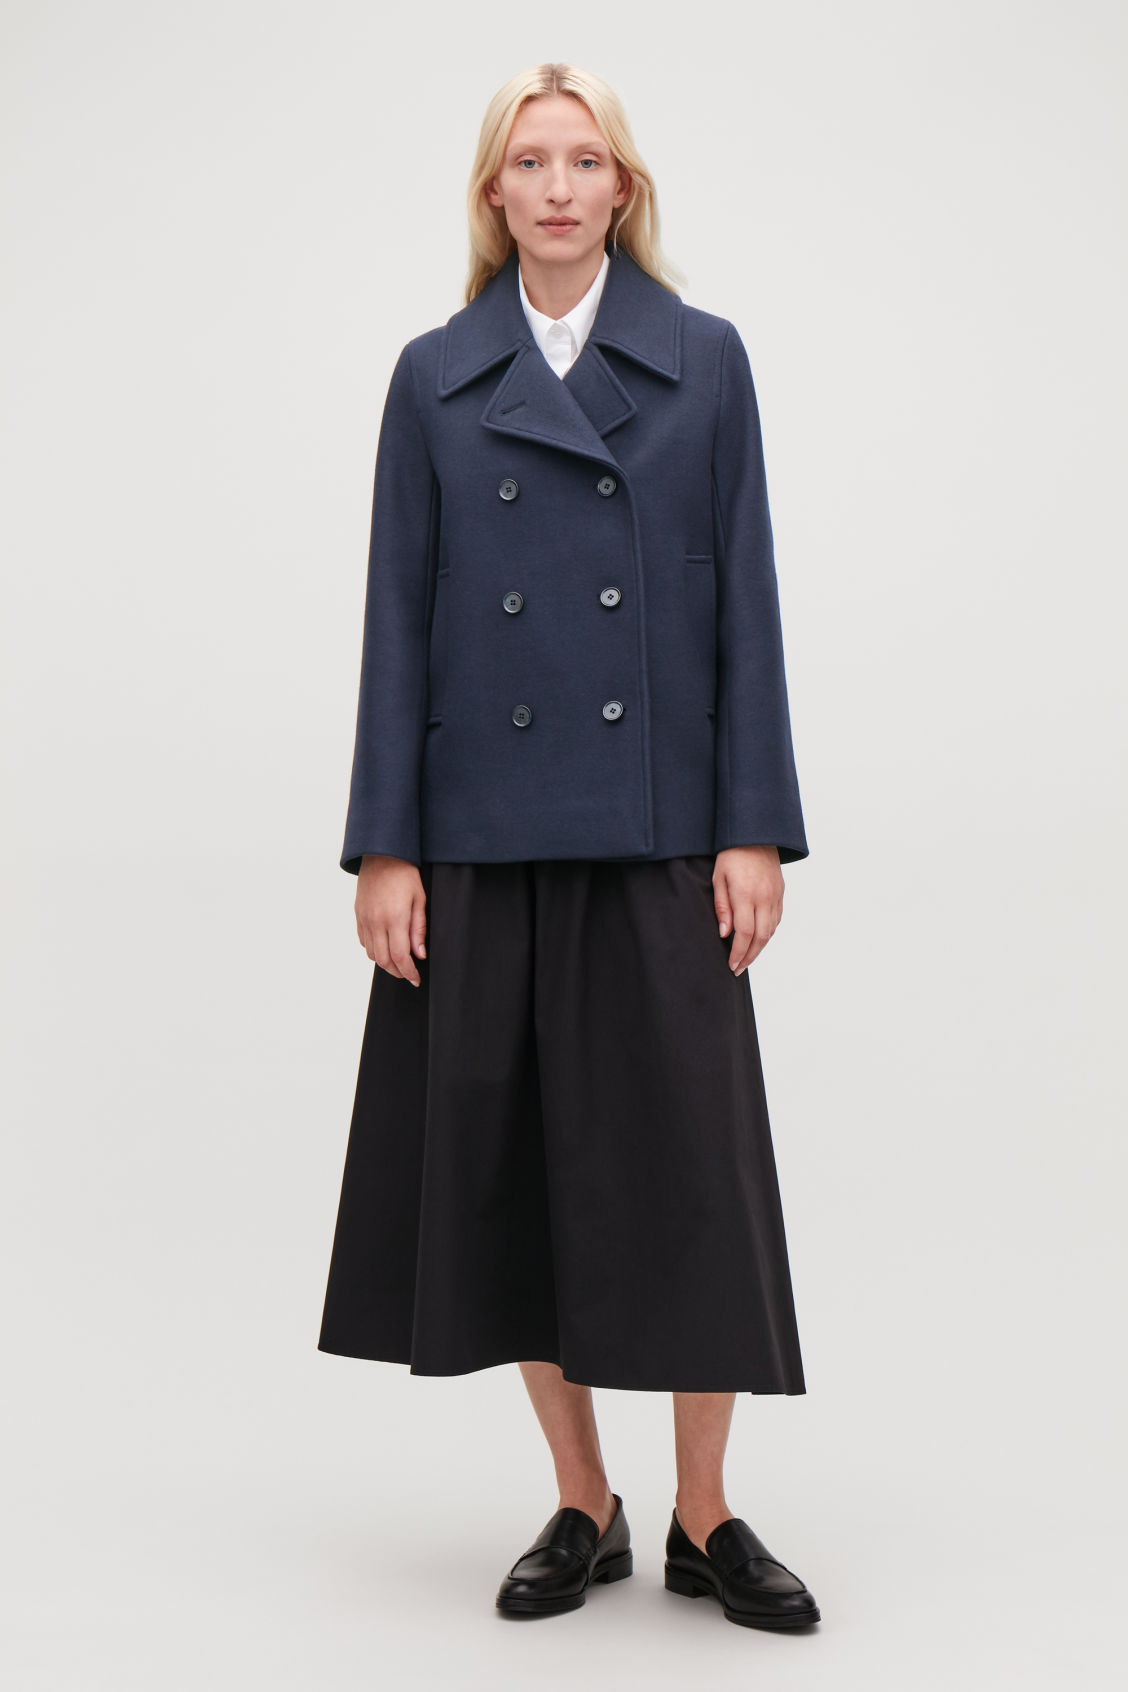 d54185da946 Navy Issue Pea Coats - Tradingbasis